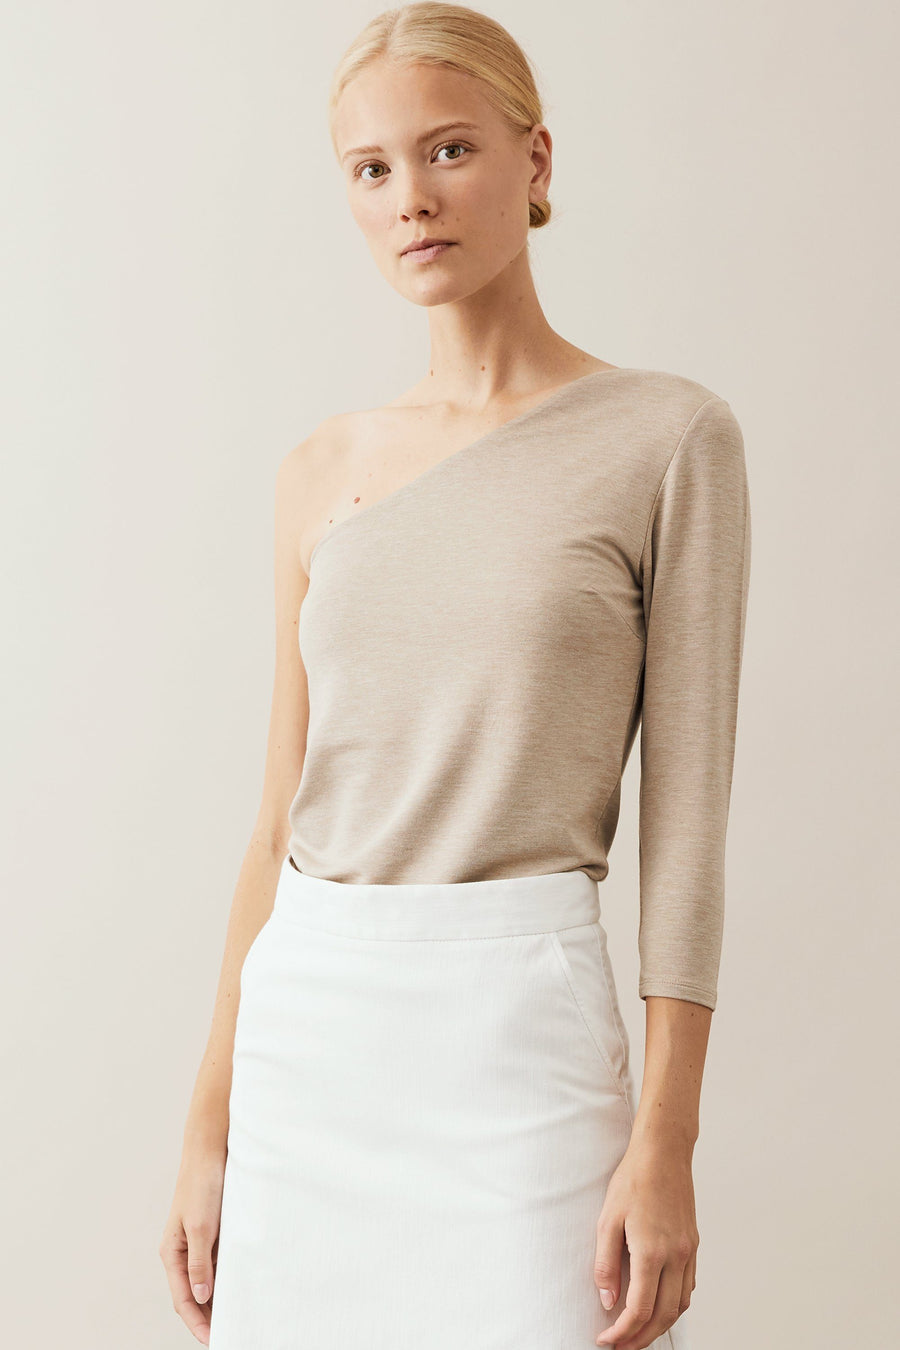 BASSA TOP - CREAM